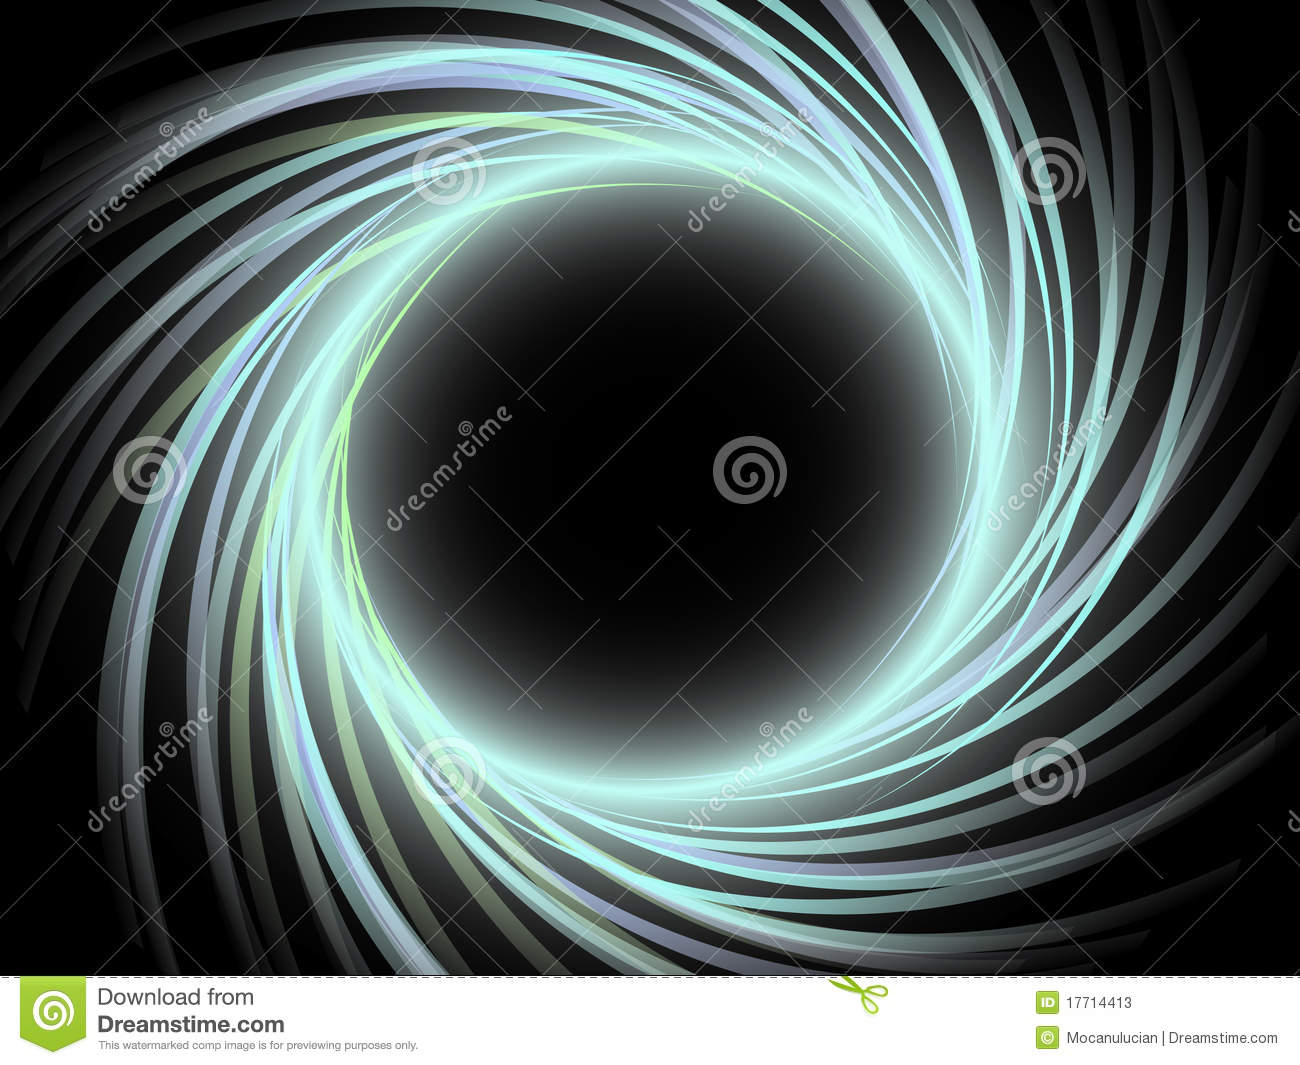 Blackhole clipart #7, Download drawings